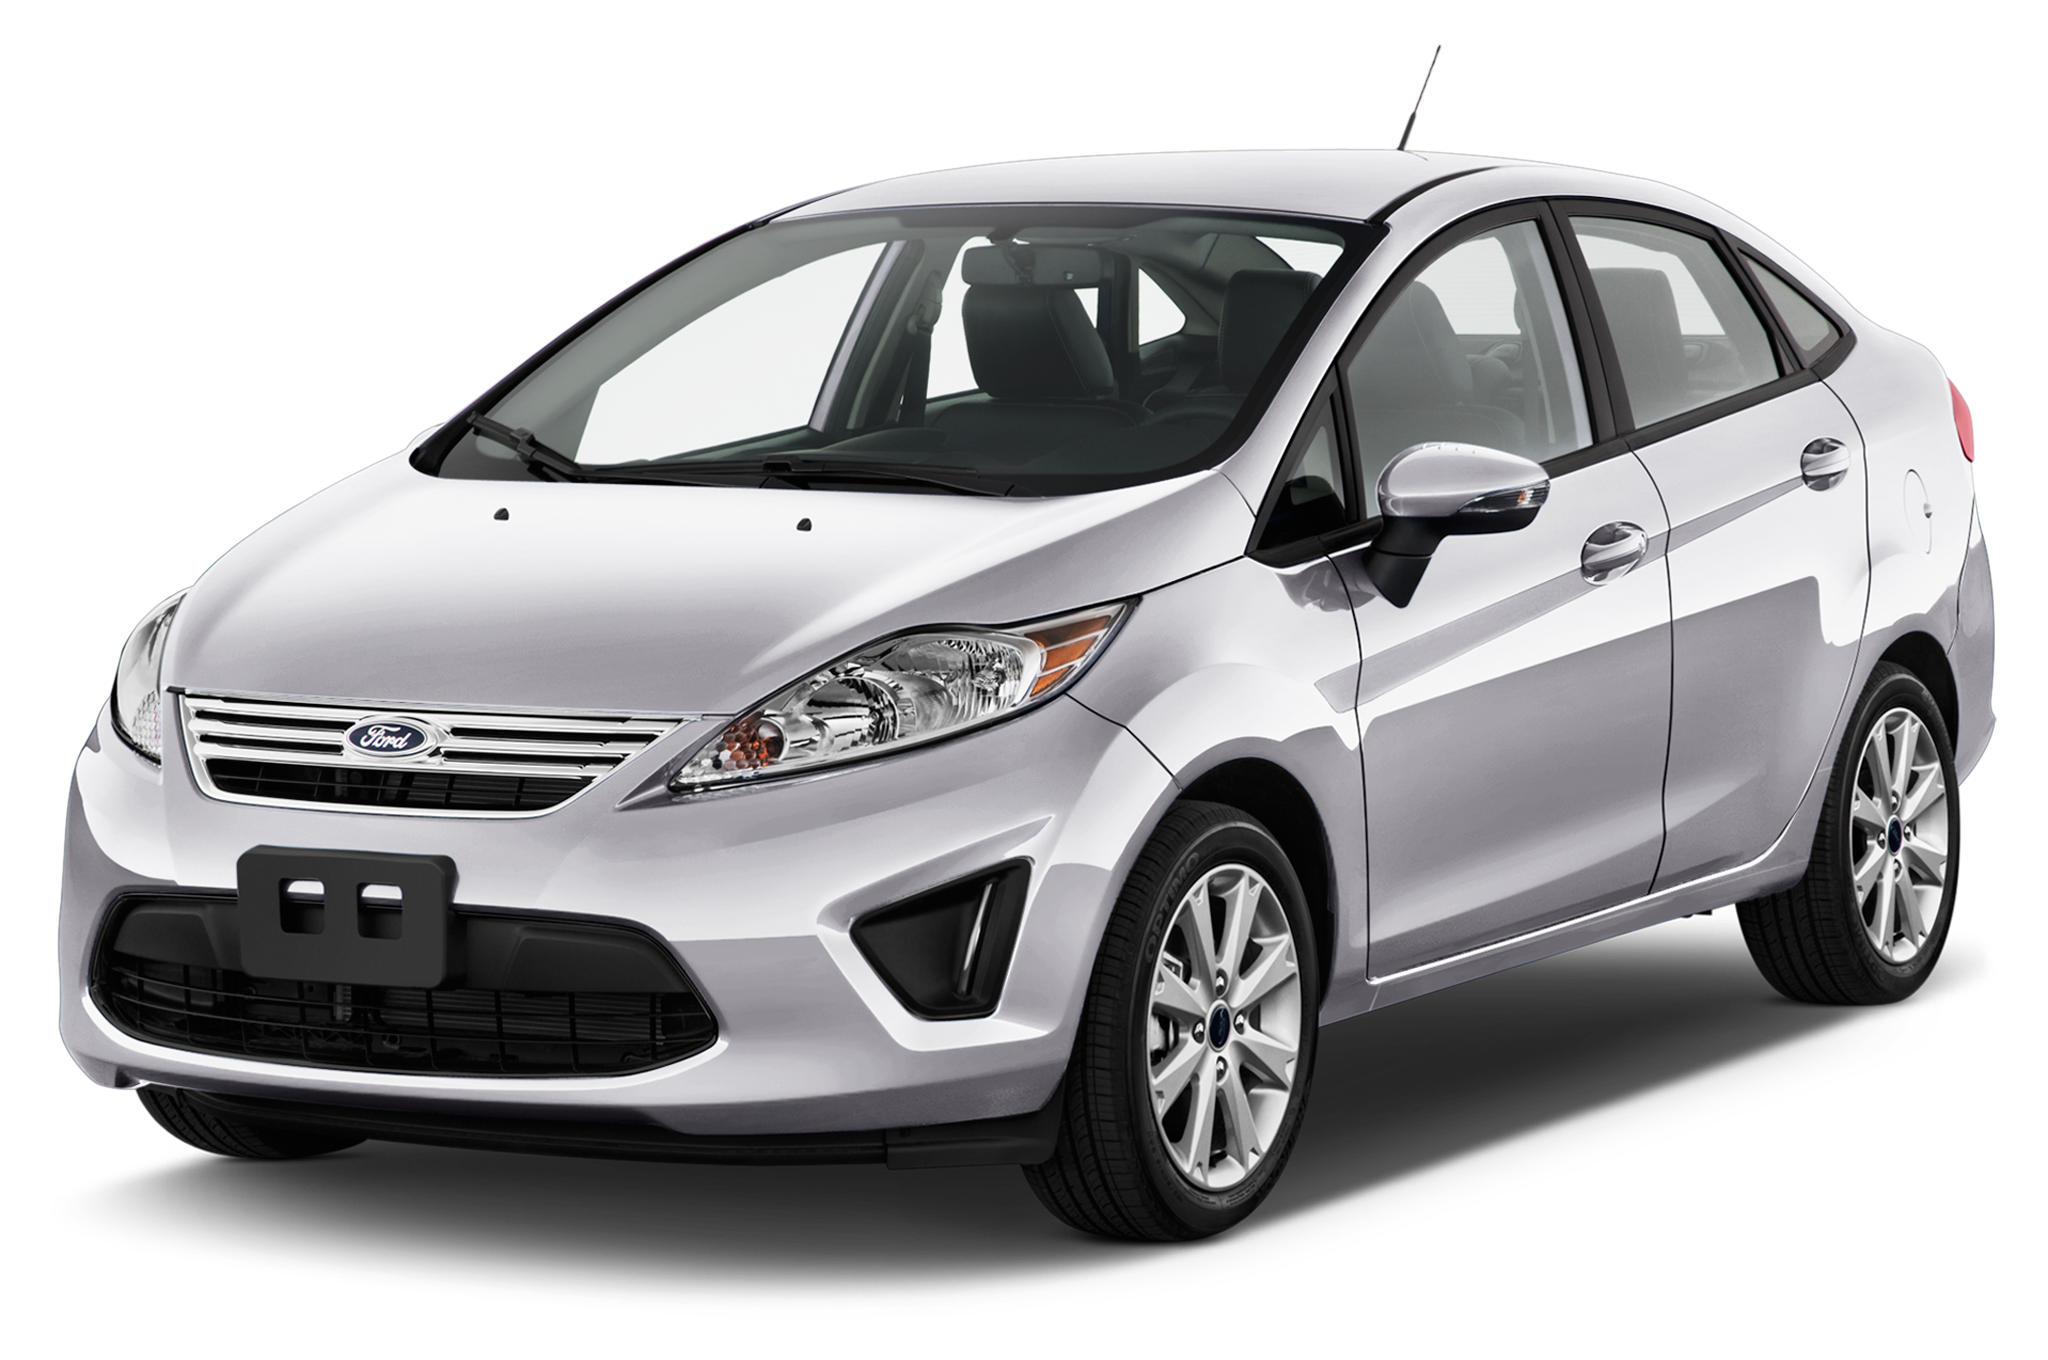 2013 ford fiesta s sedan specs and features msn autos. Black Bedroom Furniture Sets. Home Design Ideas